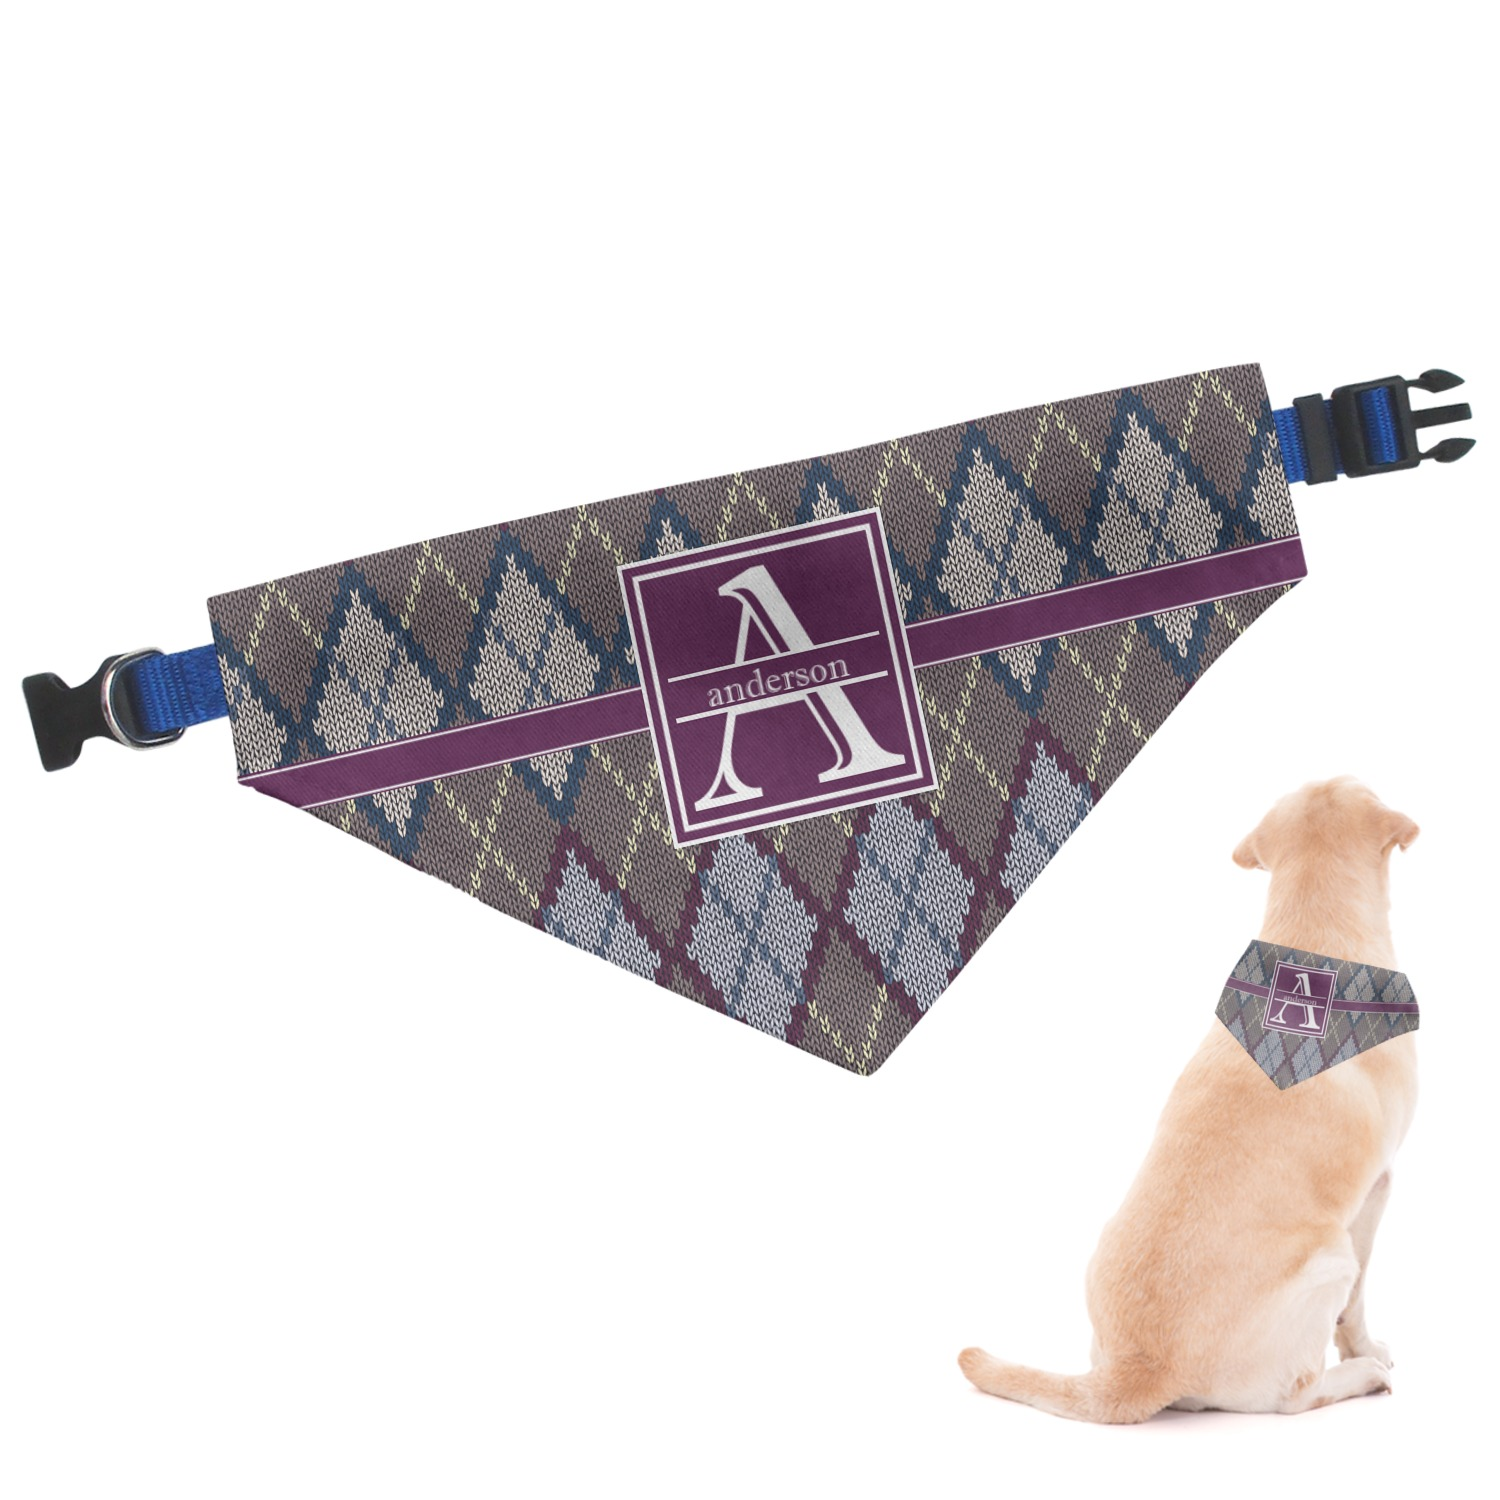 Knitting Patterns For Dog Bandanas : Knit Argyle Dog Bandana - Large (Personalized) - YouCustomizeIt